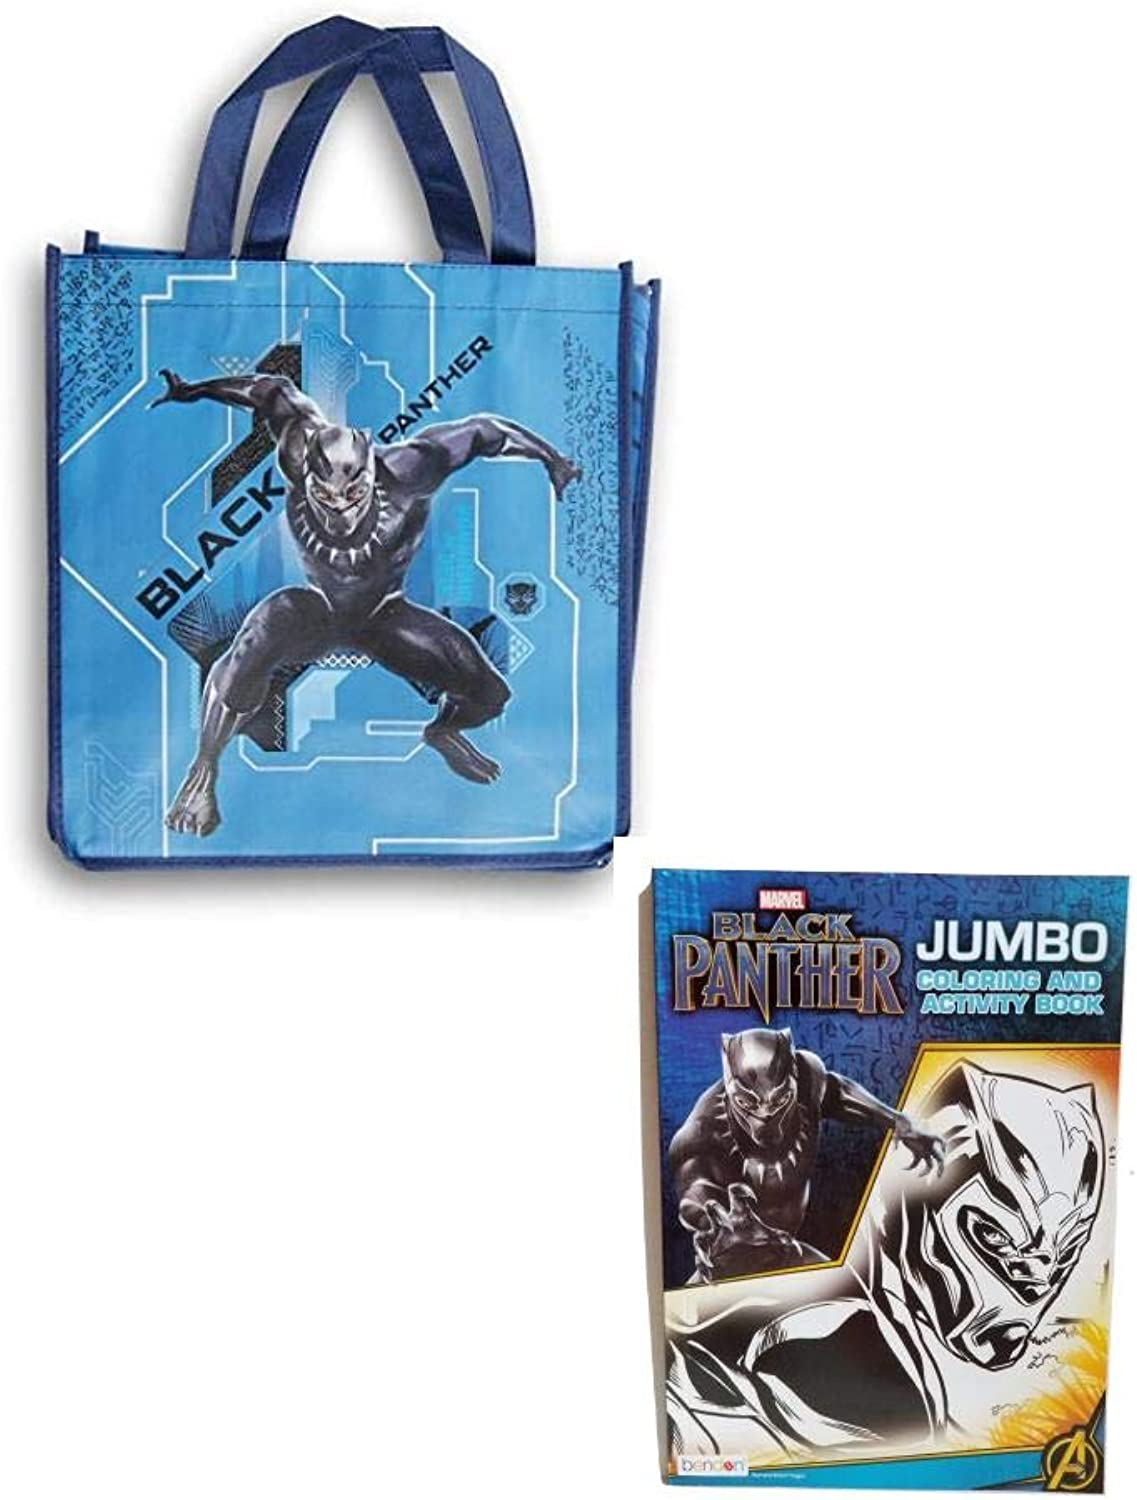 Greenbreir International Black Panther bluee Reusable Tote with Jumbo coloring and Activity Book